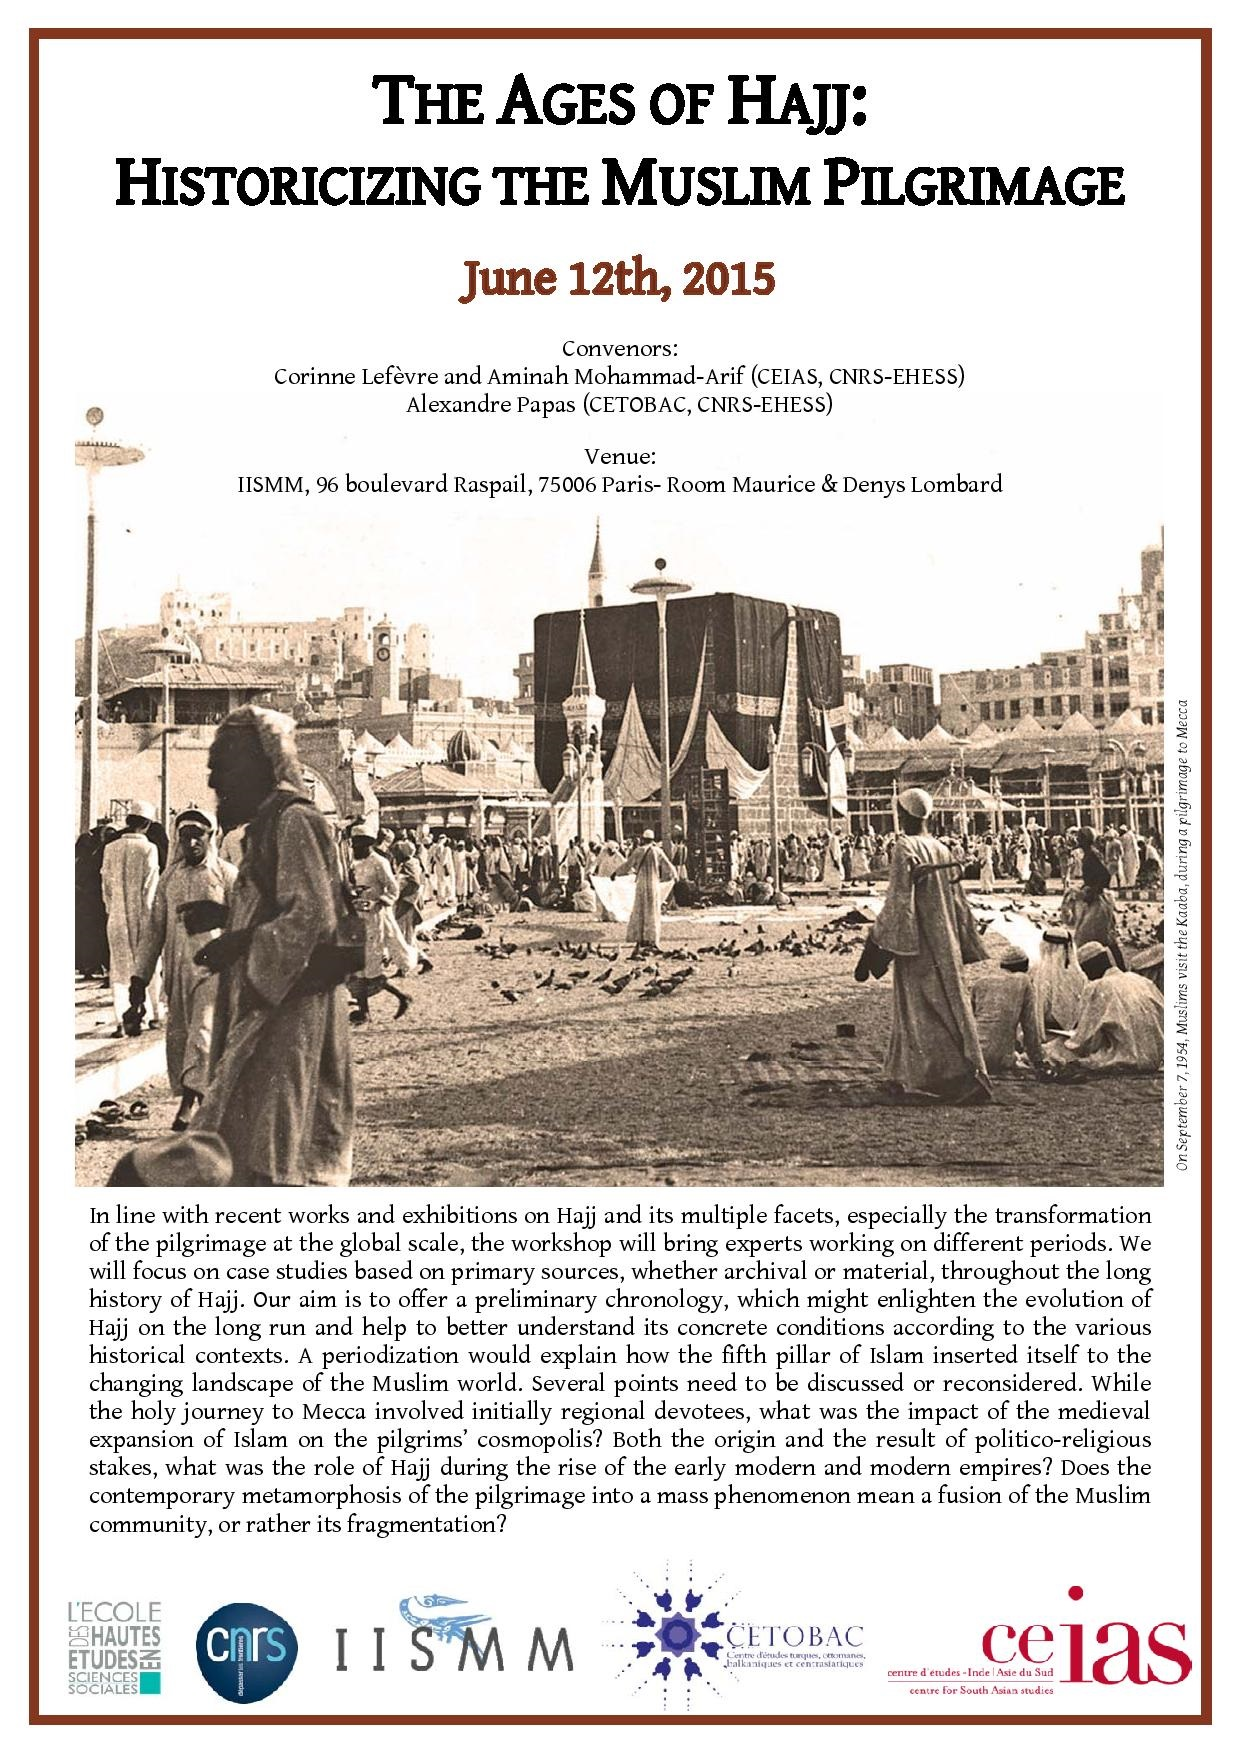 International Workshop « The Ages of Hajj: Historicizing the Muslim Pilgrimage », IISMM (salle Lombard), Paris, 12 juin 2015, 9h-18h30